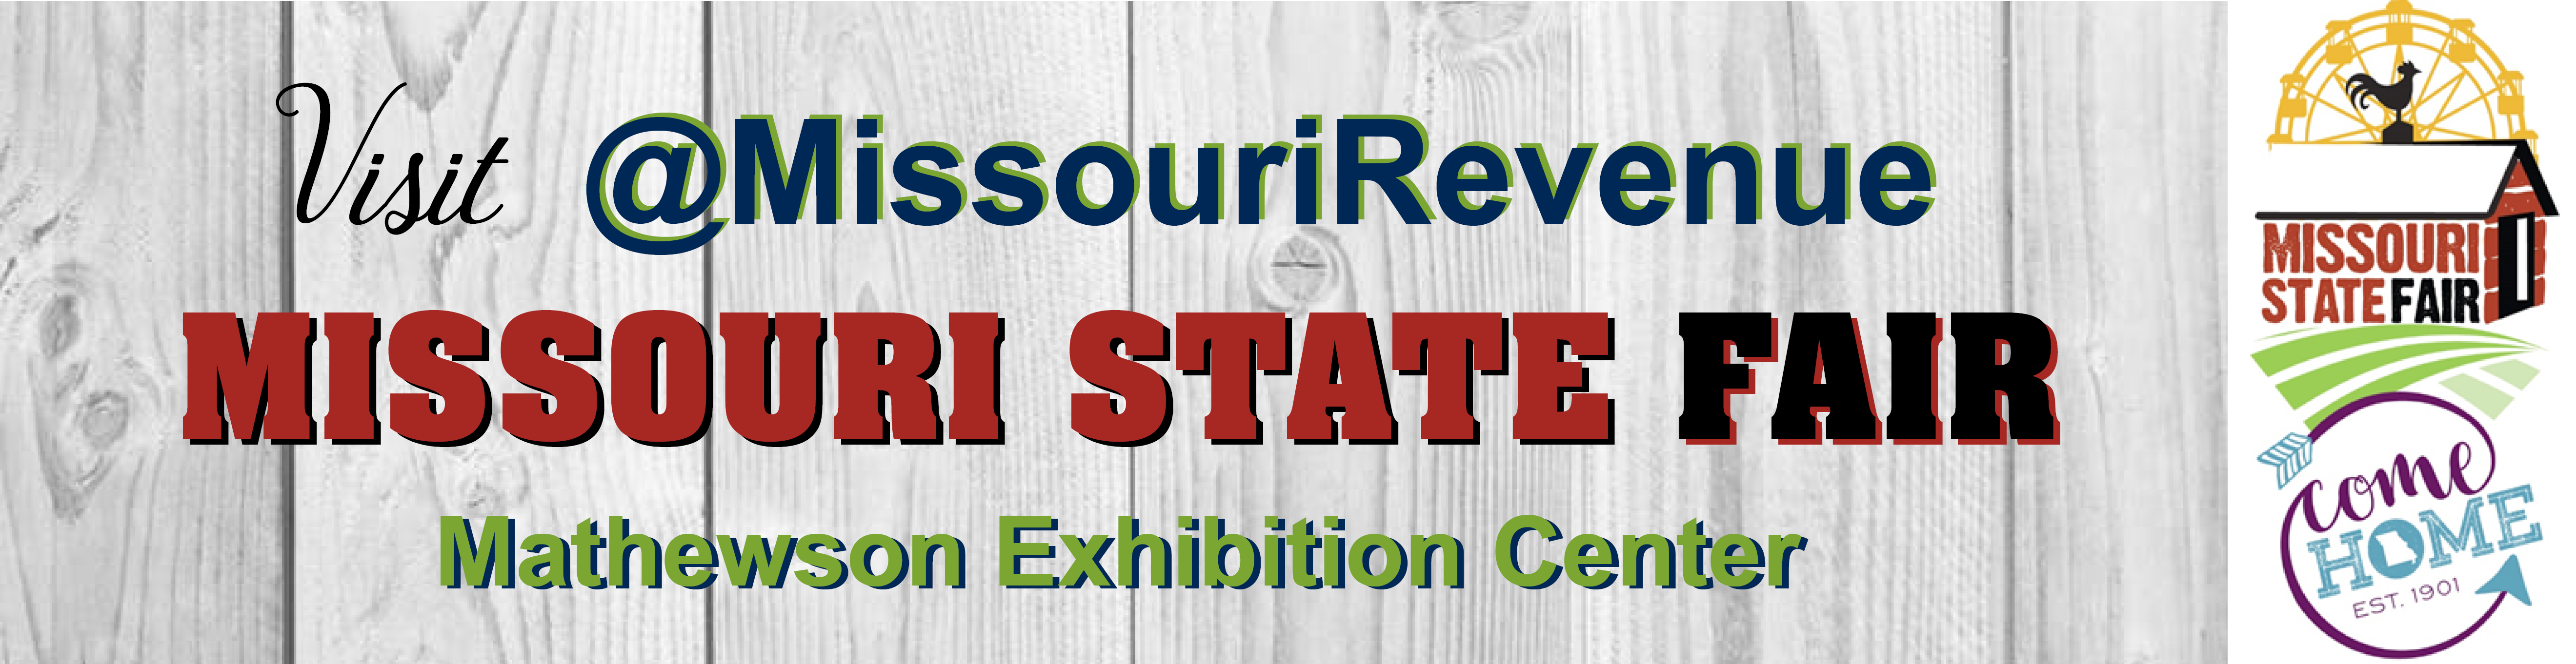 Visit @MissouriRevenue at the Missouri State Fair in the Mathewson Exhibition Center